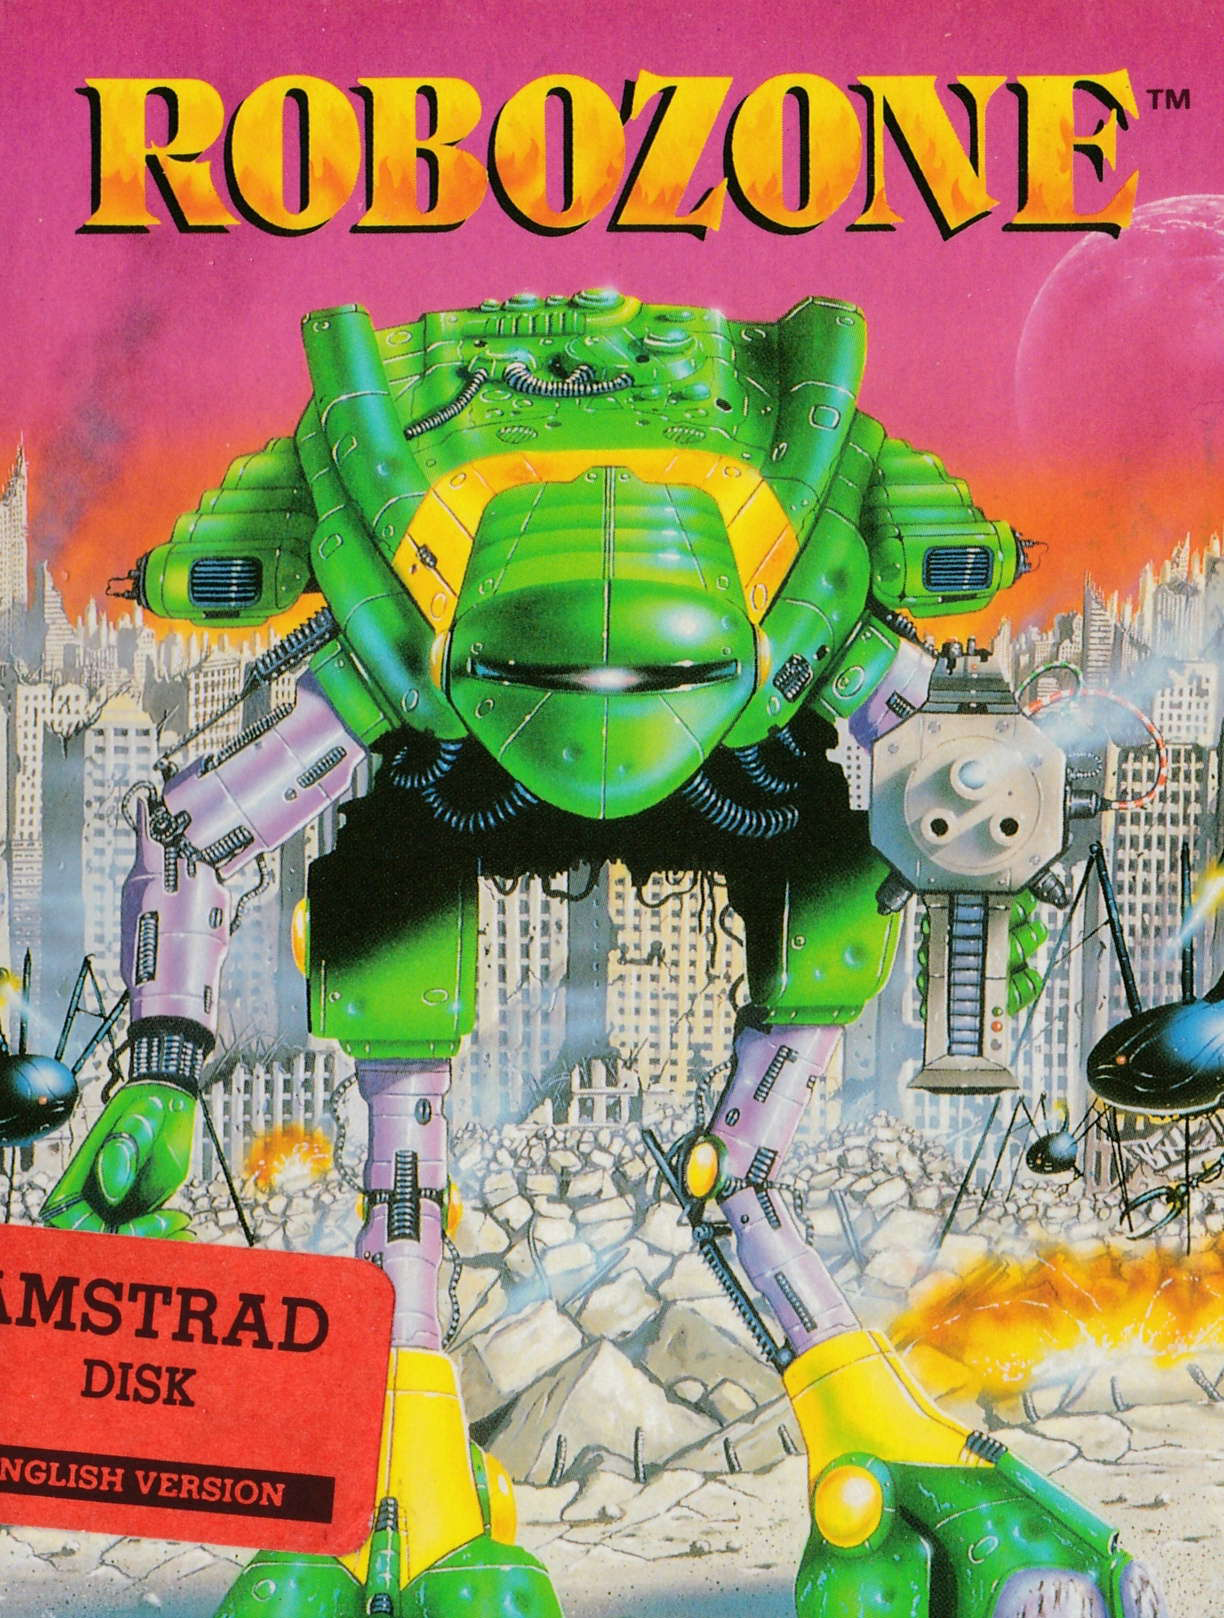 cover of the Amstrad CPC game Robozone  by GameBase CPC